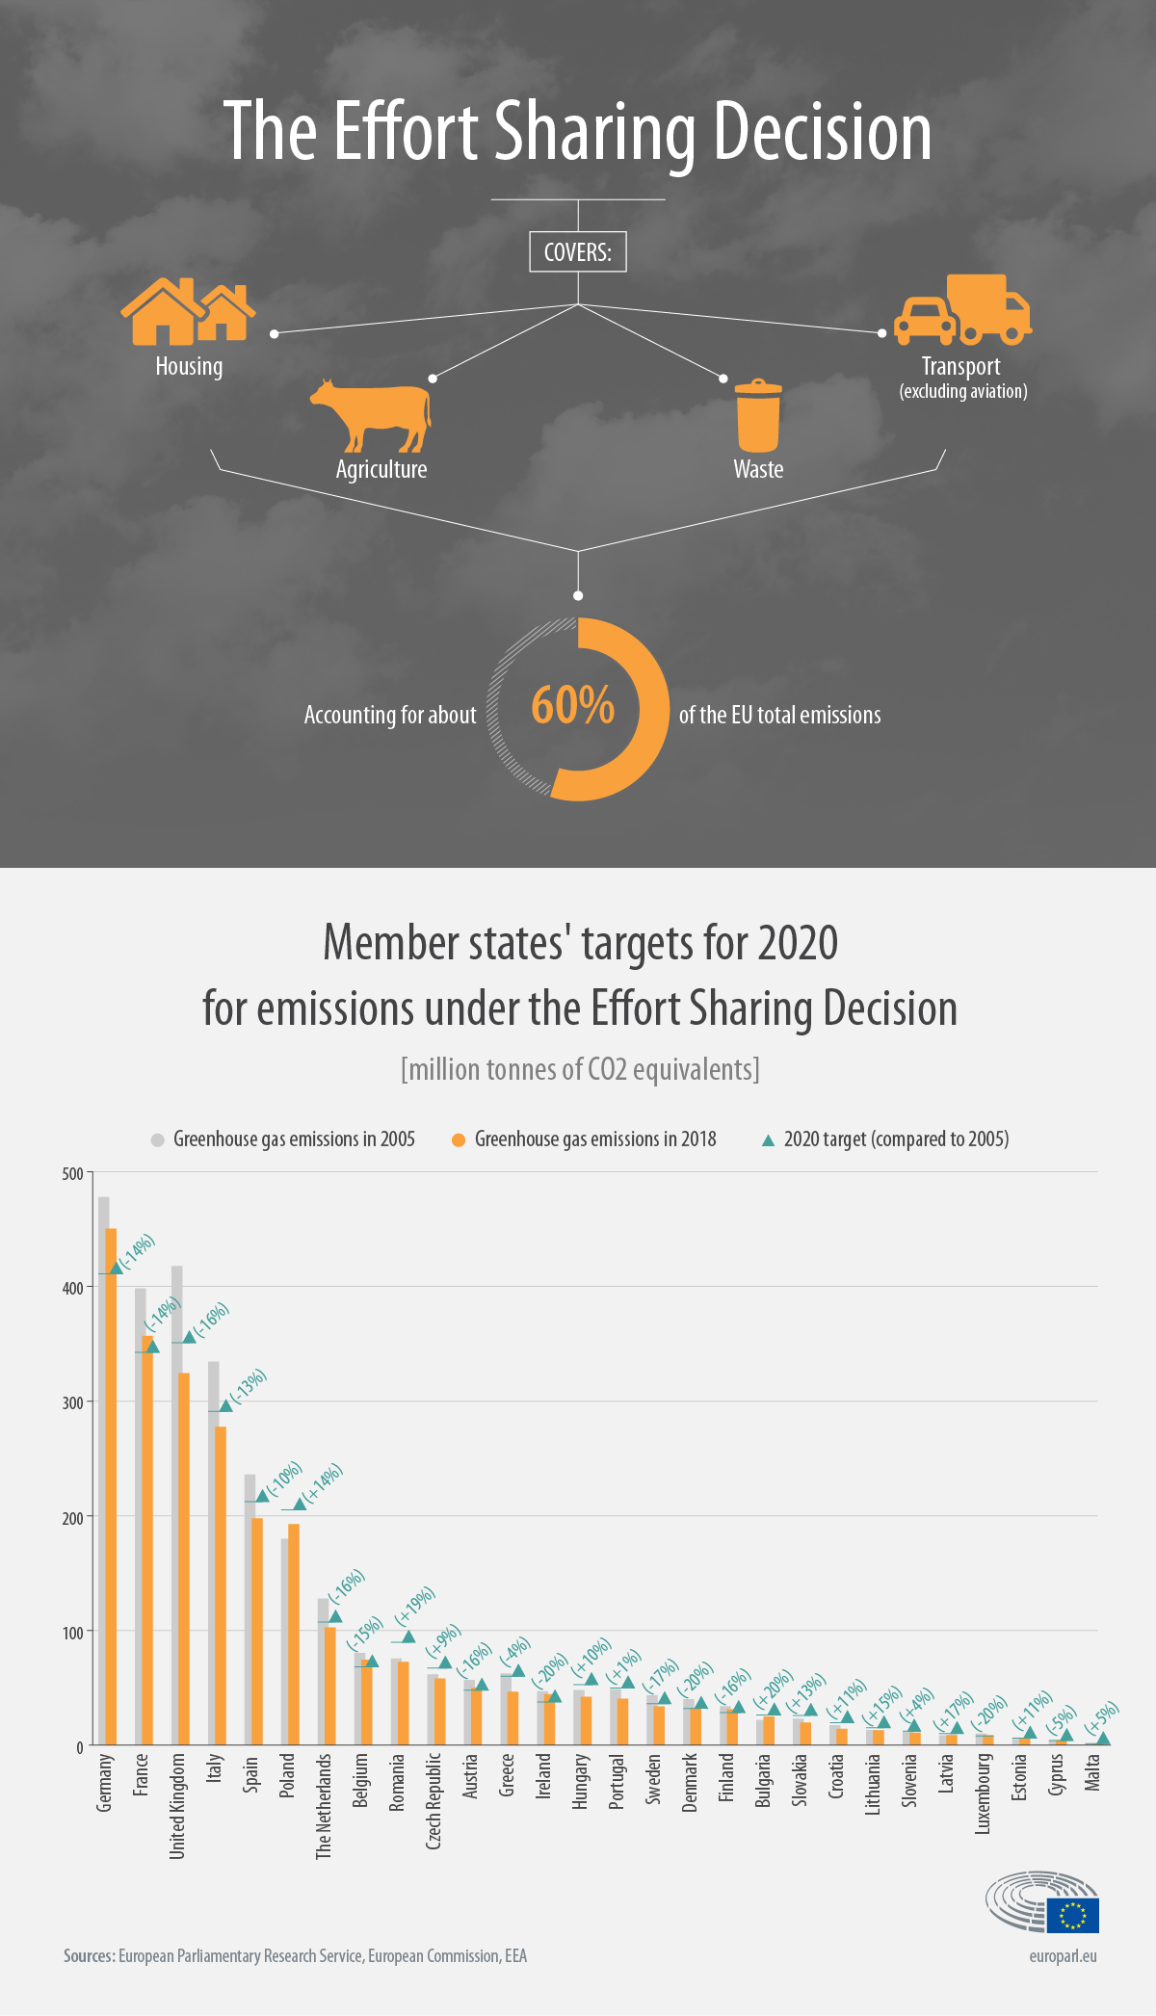 Infographic showing EU countries's greenhouse gas emissions in 2005 and 2018 and comparing progress towards the 2020 reduction target